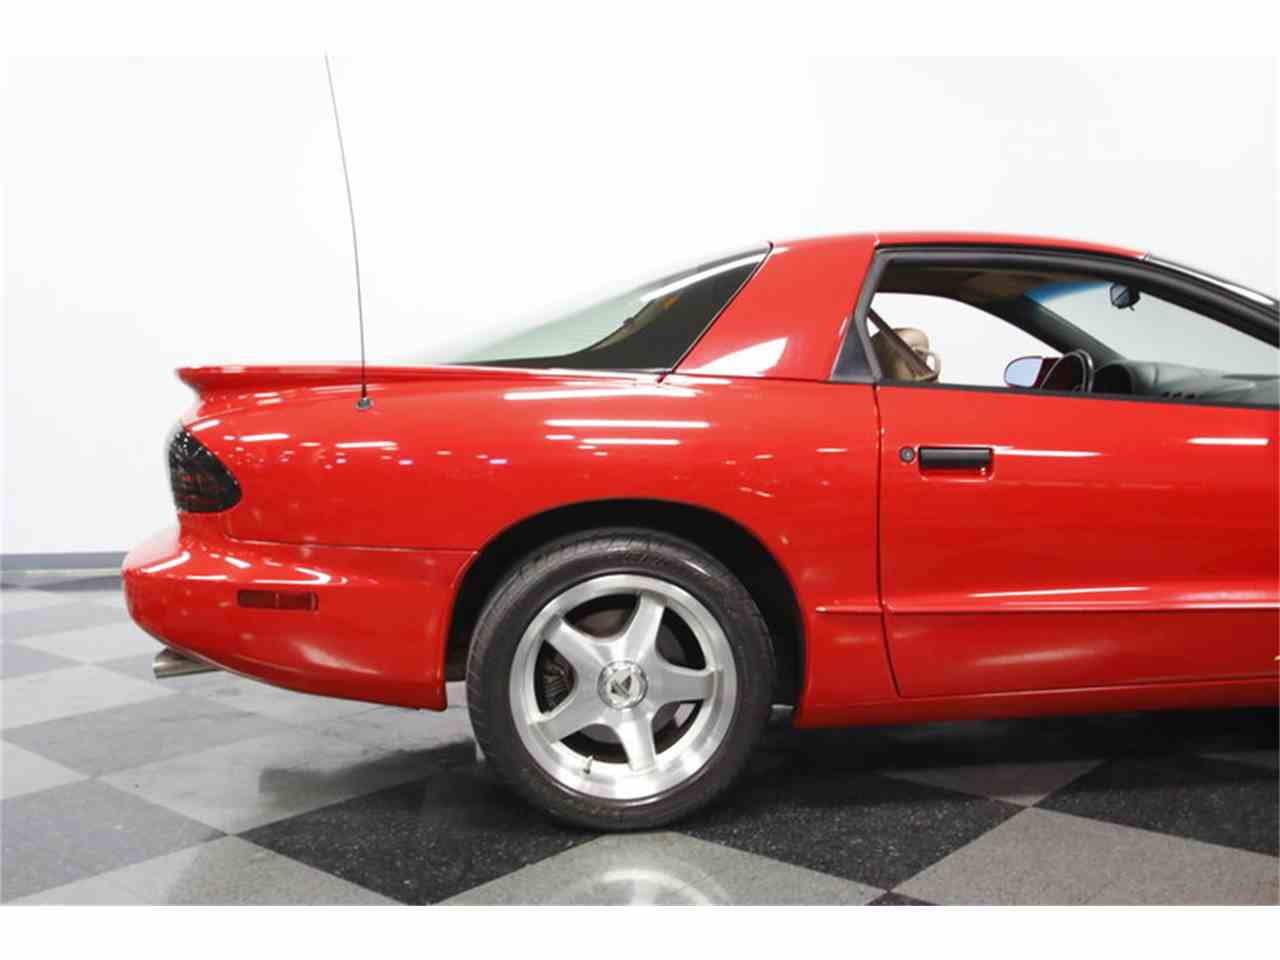 Large Picture of '93 Pontiac Firebird located in North Carolina Offered by Streetside Classics - Charlotte - MZJM